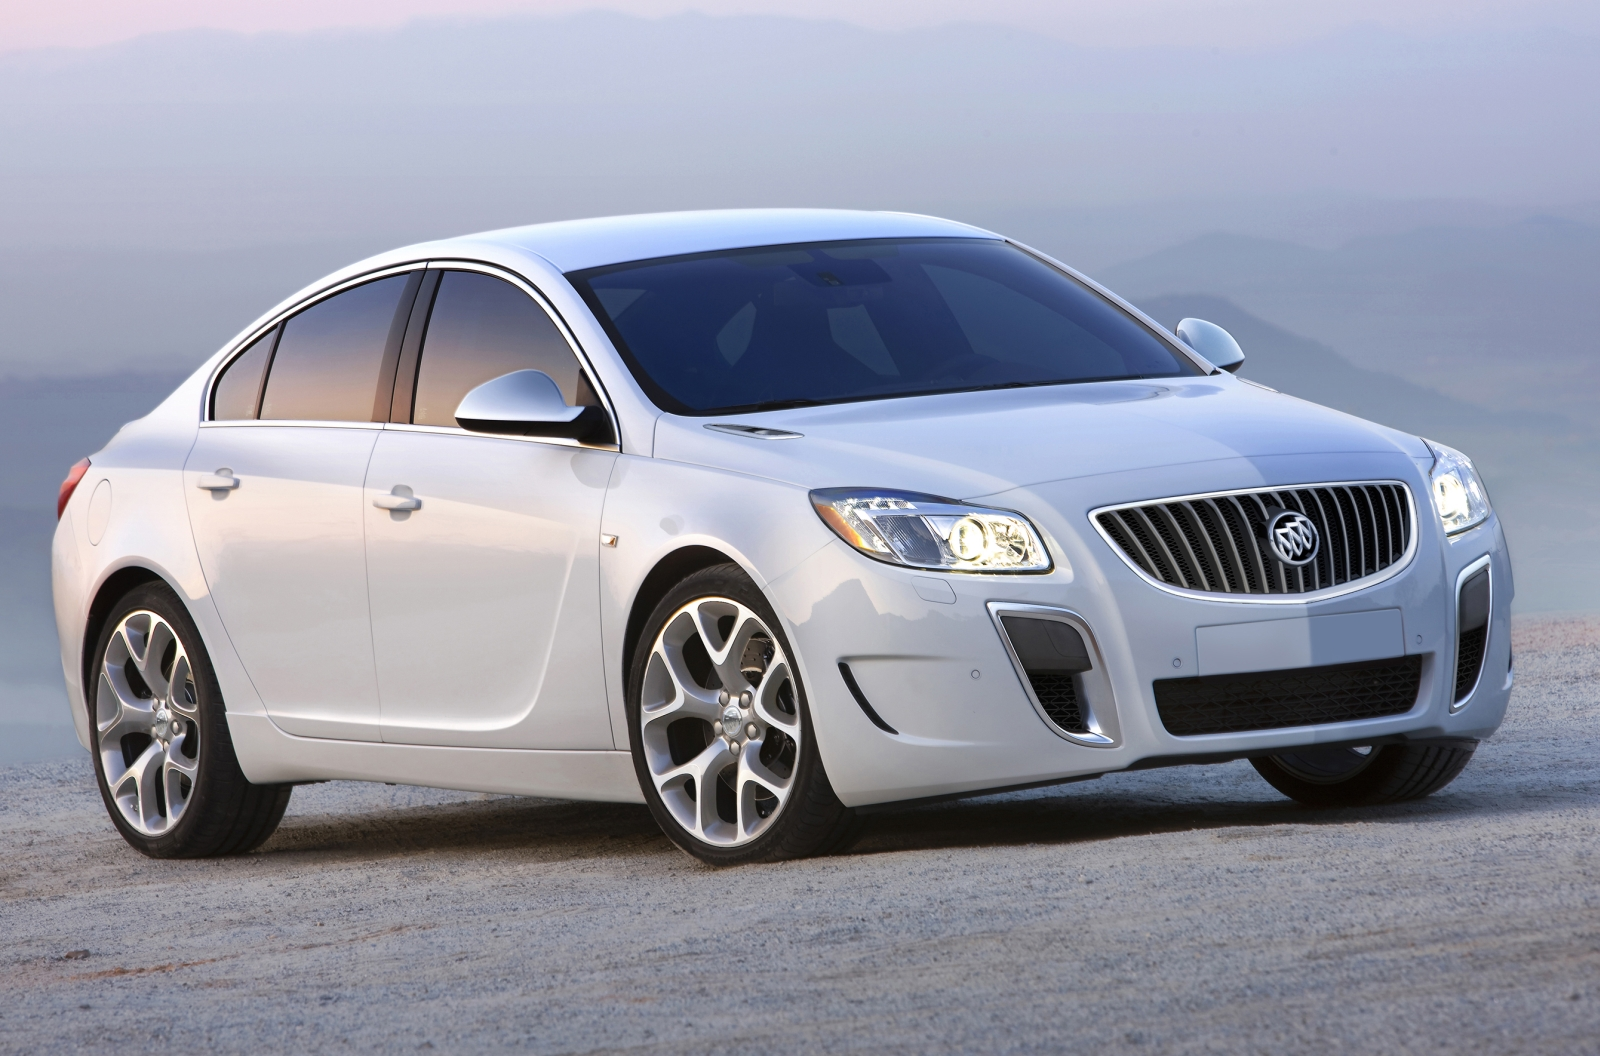 Buick Regal GS (2012)[Reviews]